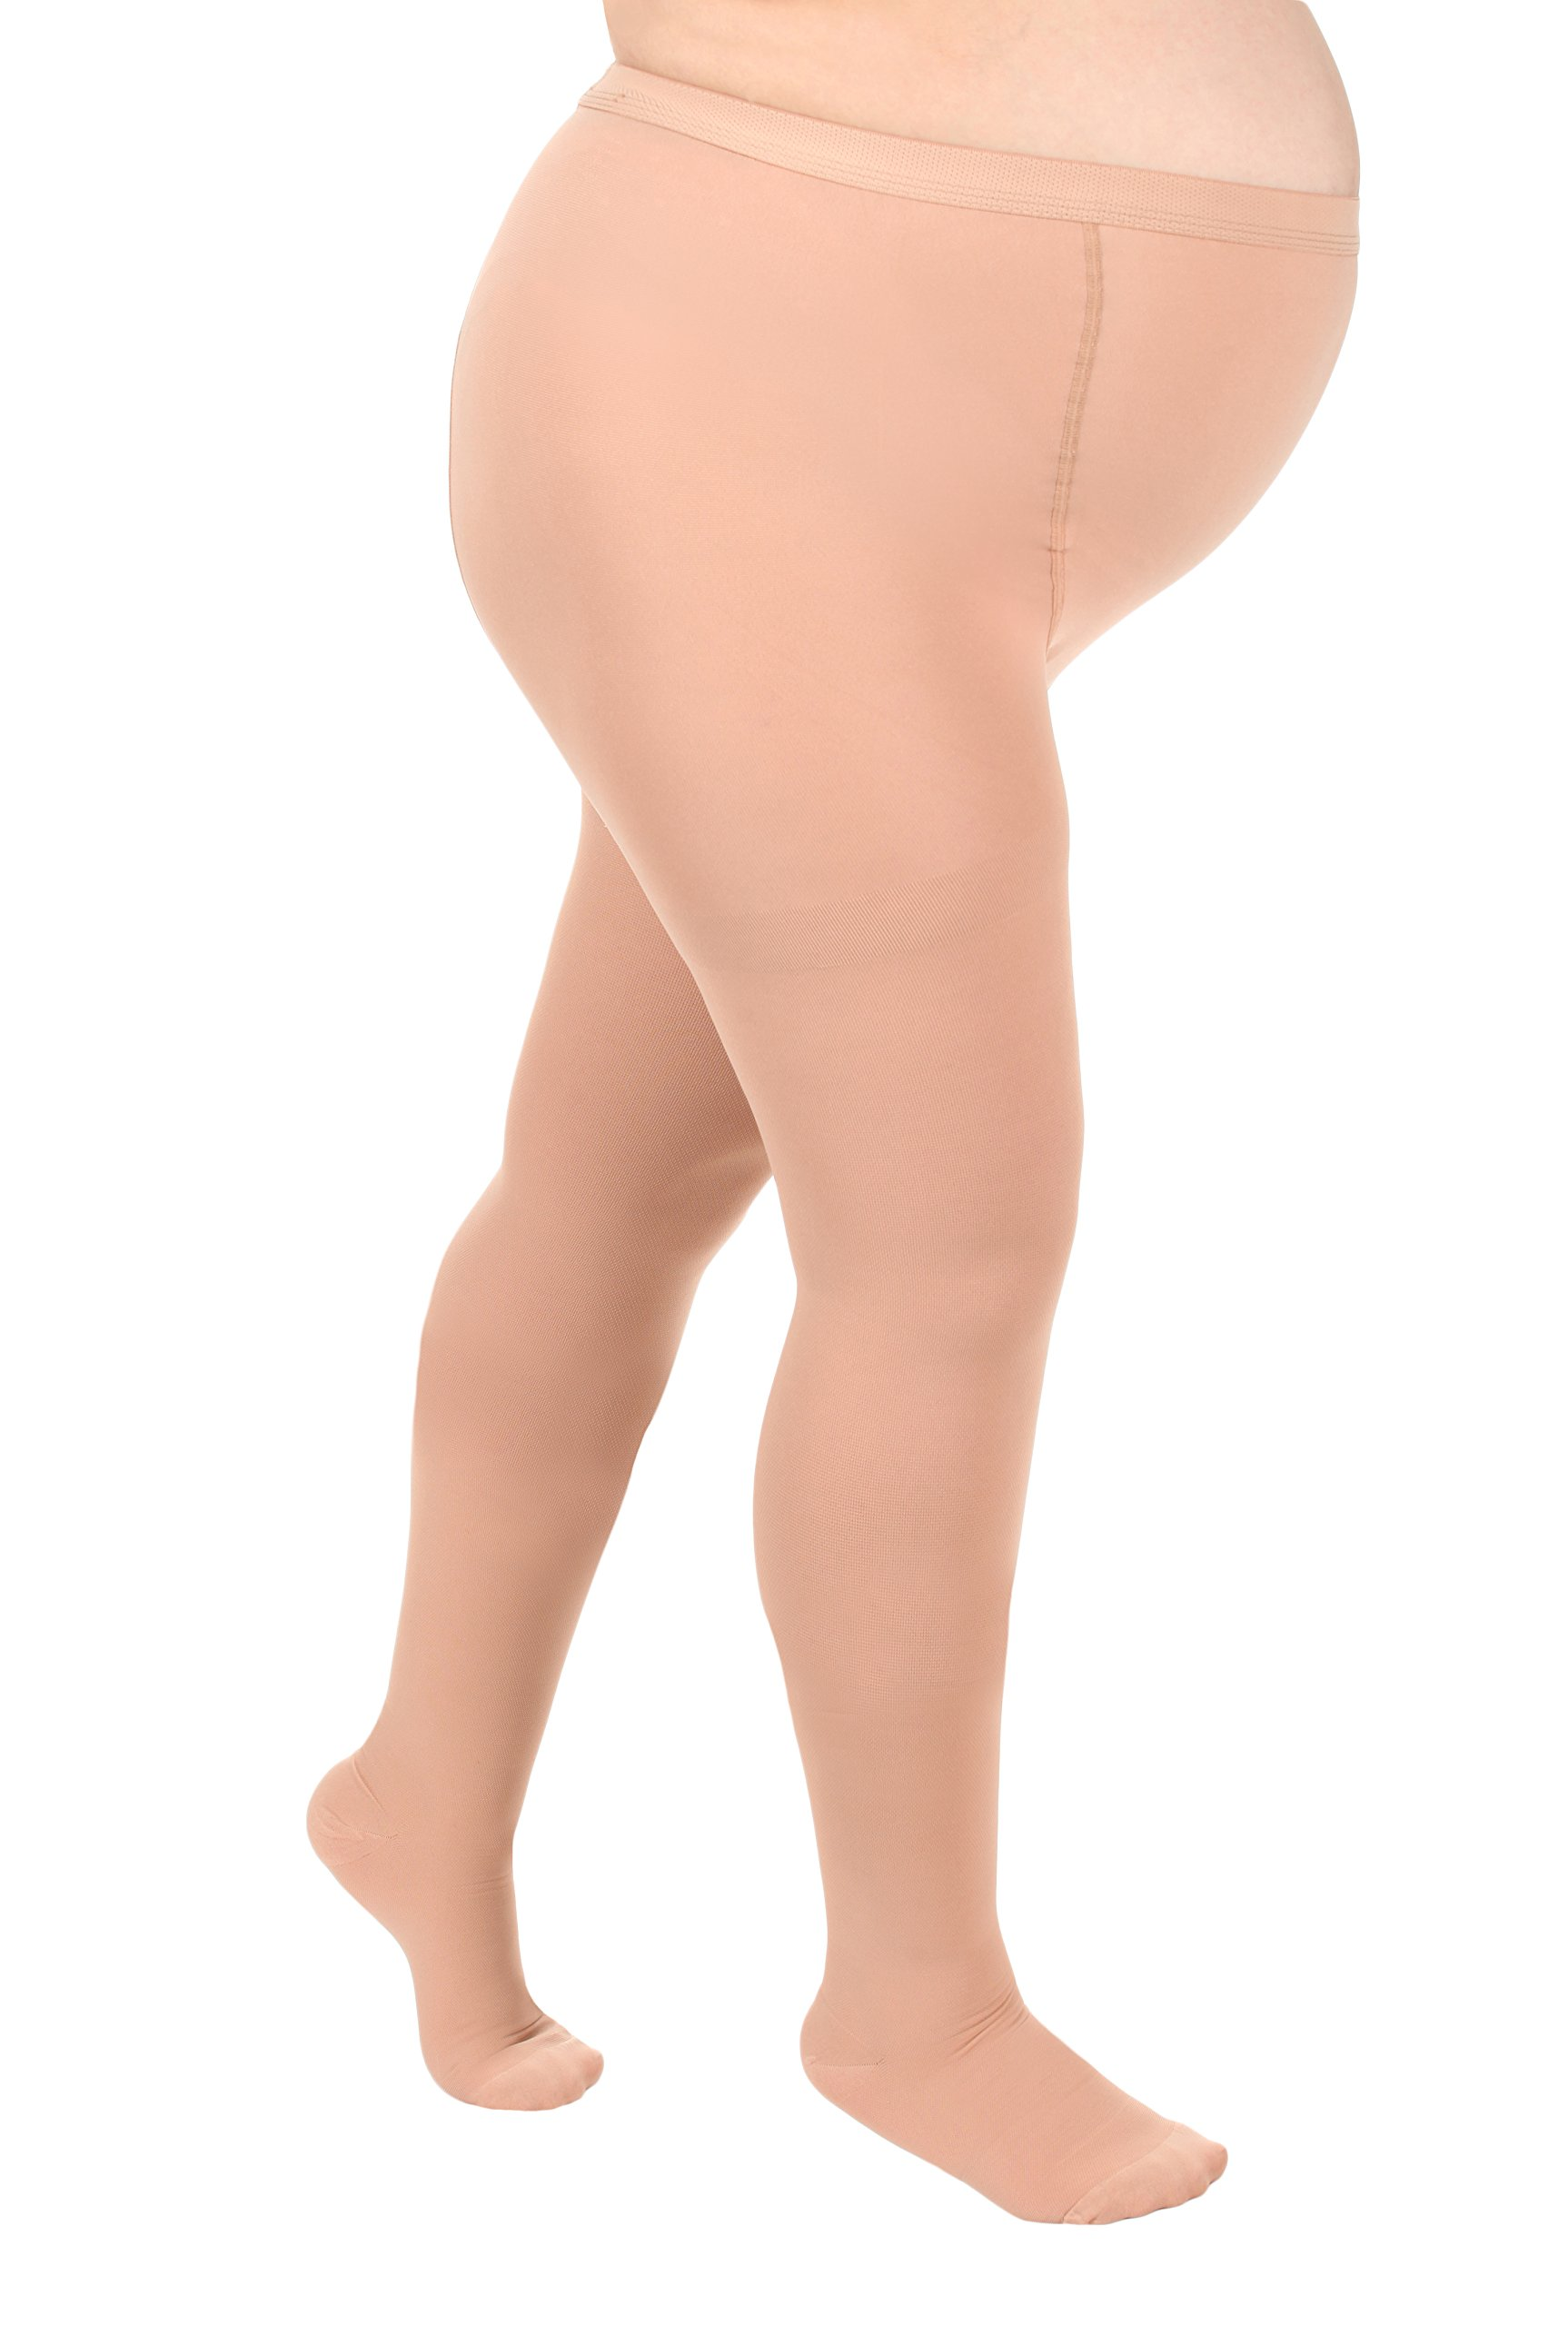 Opaque Maternity Compression Stockings Pantyhose 20-30mmHg, Beige XL by Absolute Support